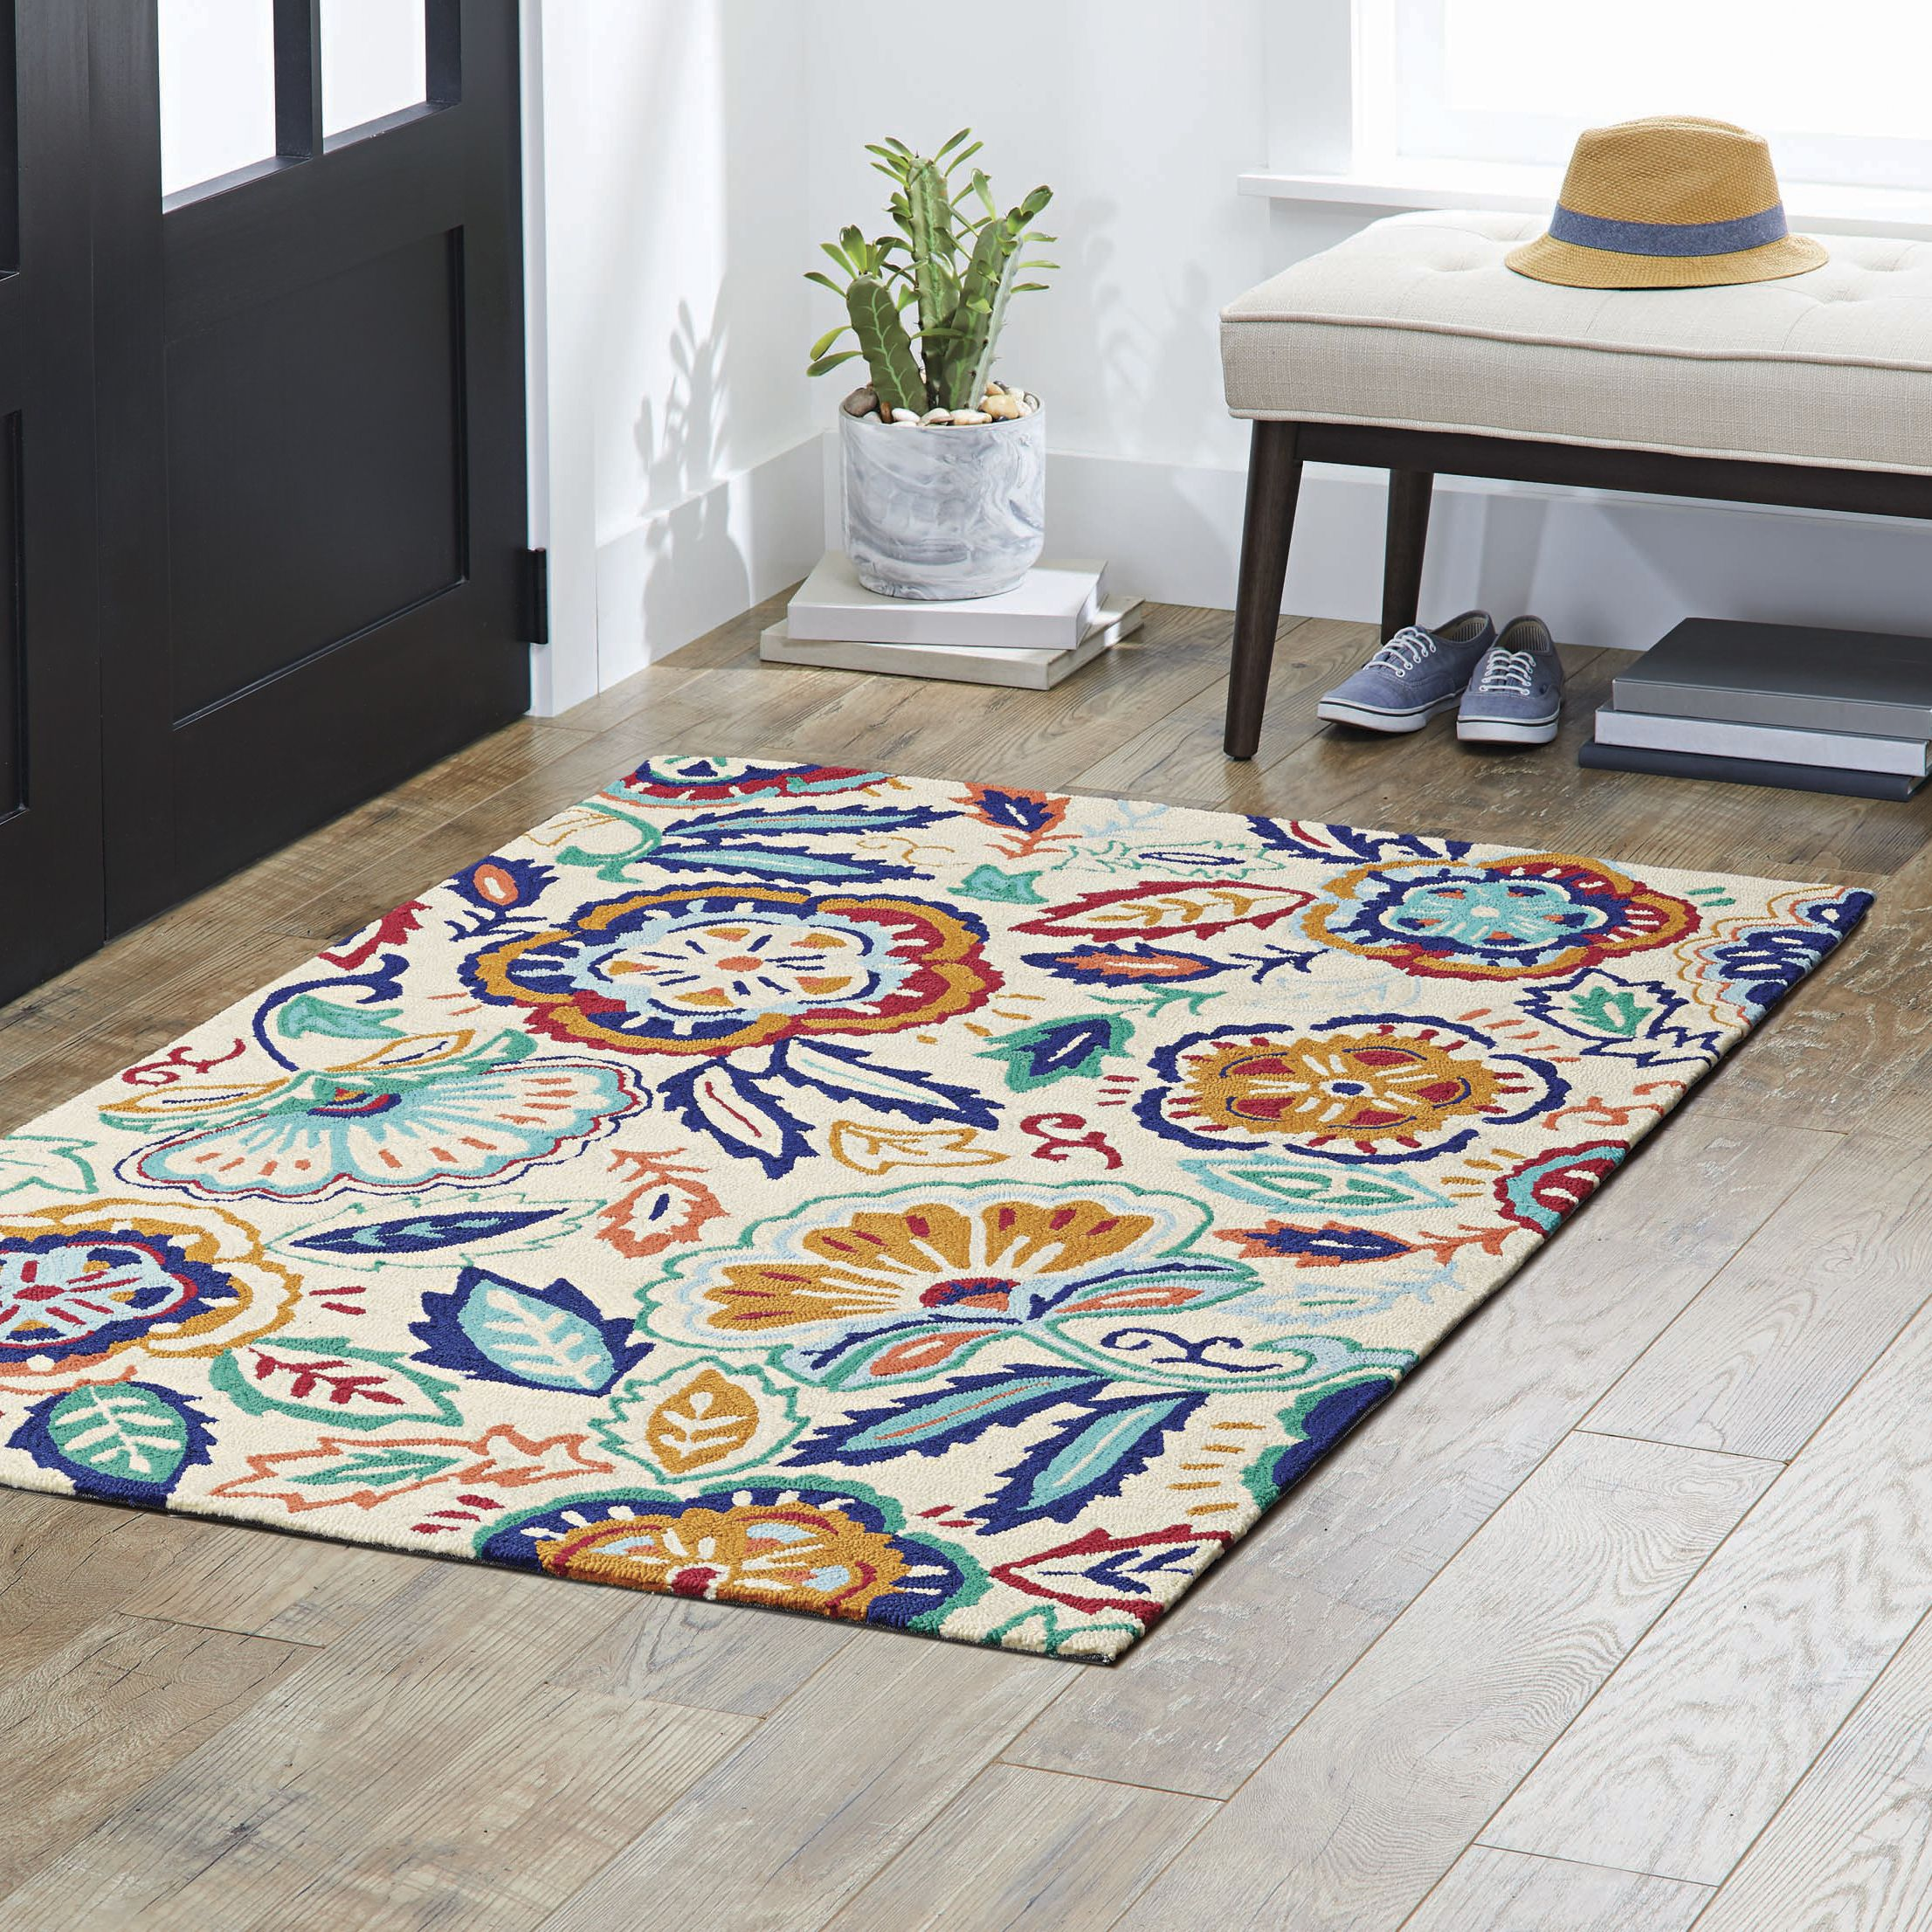 Better Homes And Gardens Olefin Area Rug With Images Better